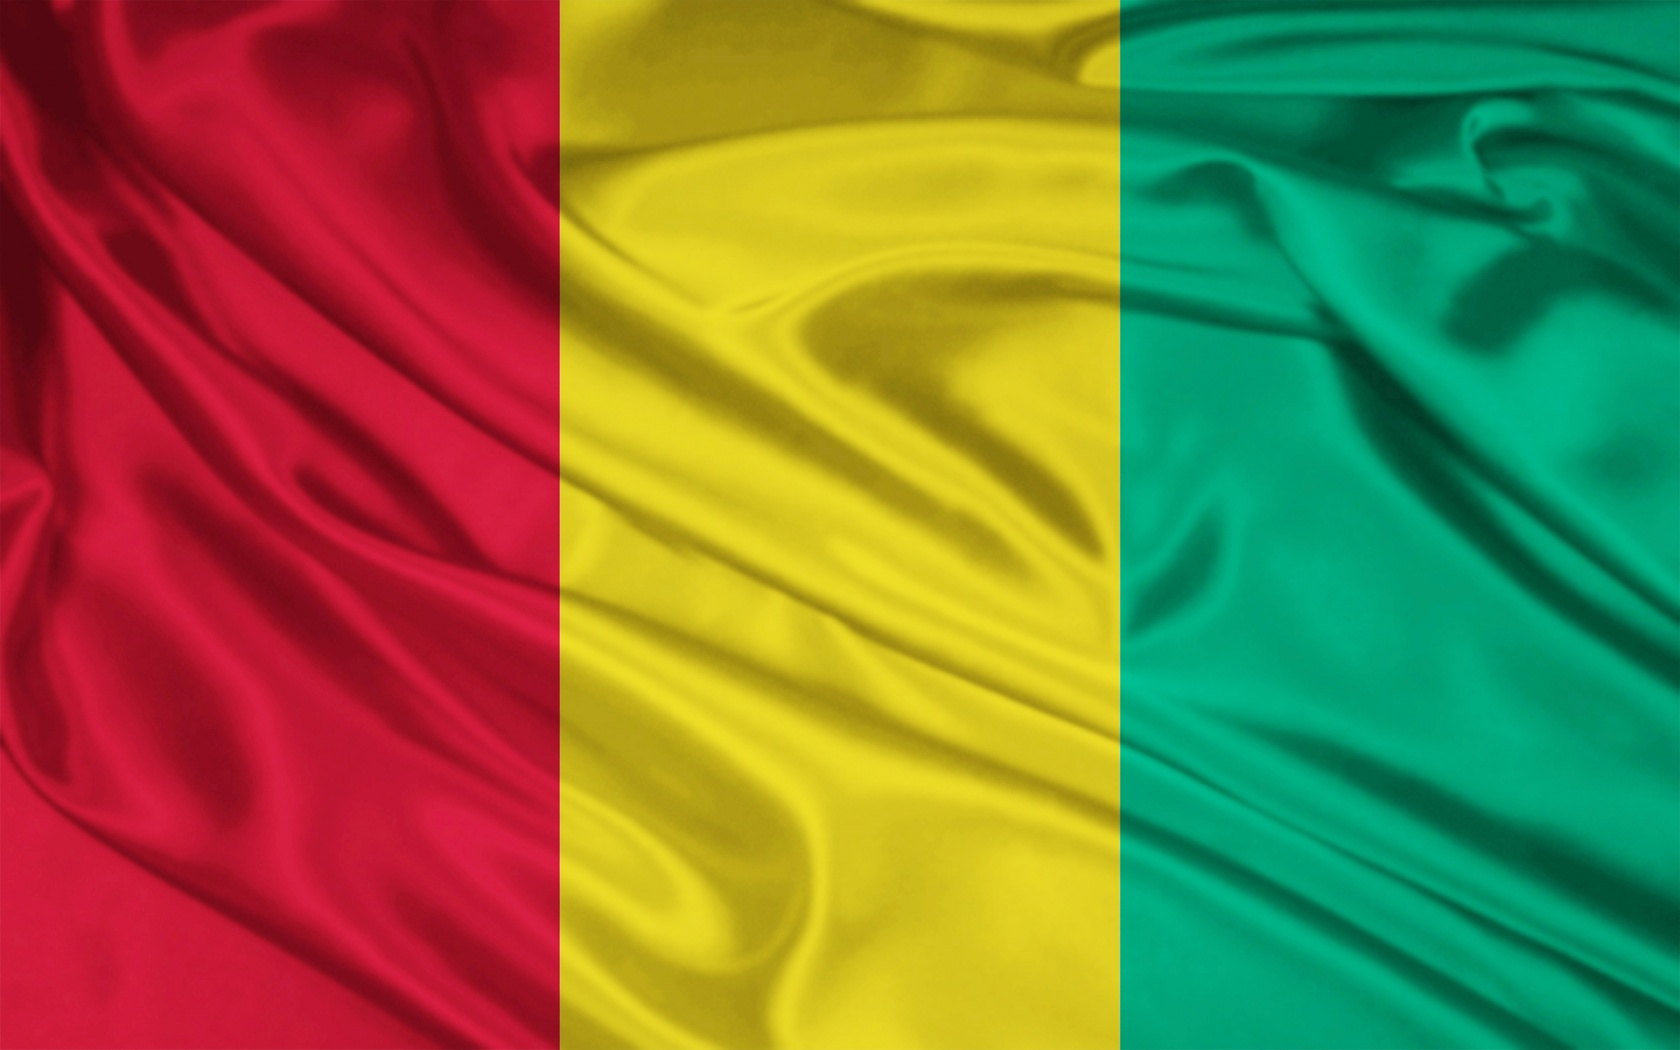 Republic of Guinea flag and wallpaper